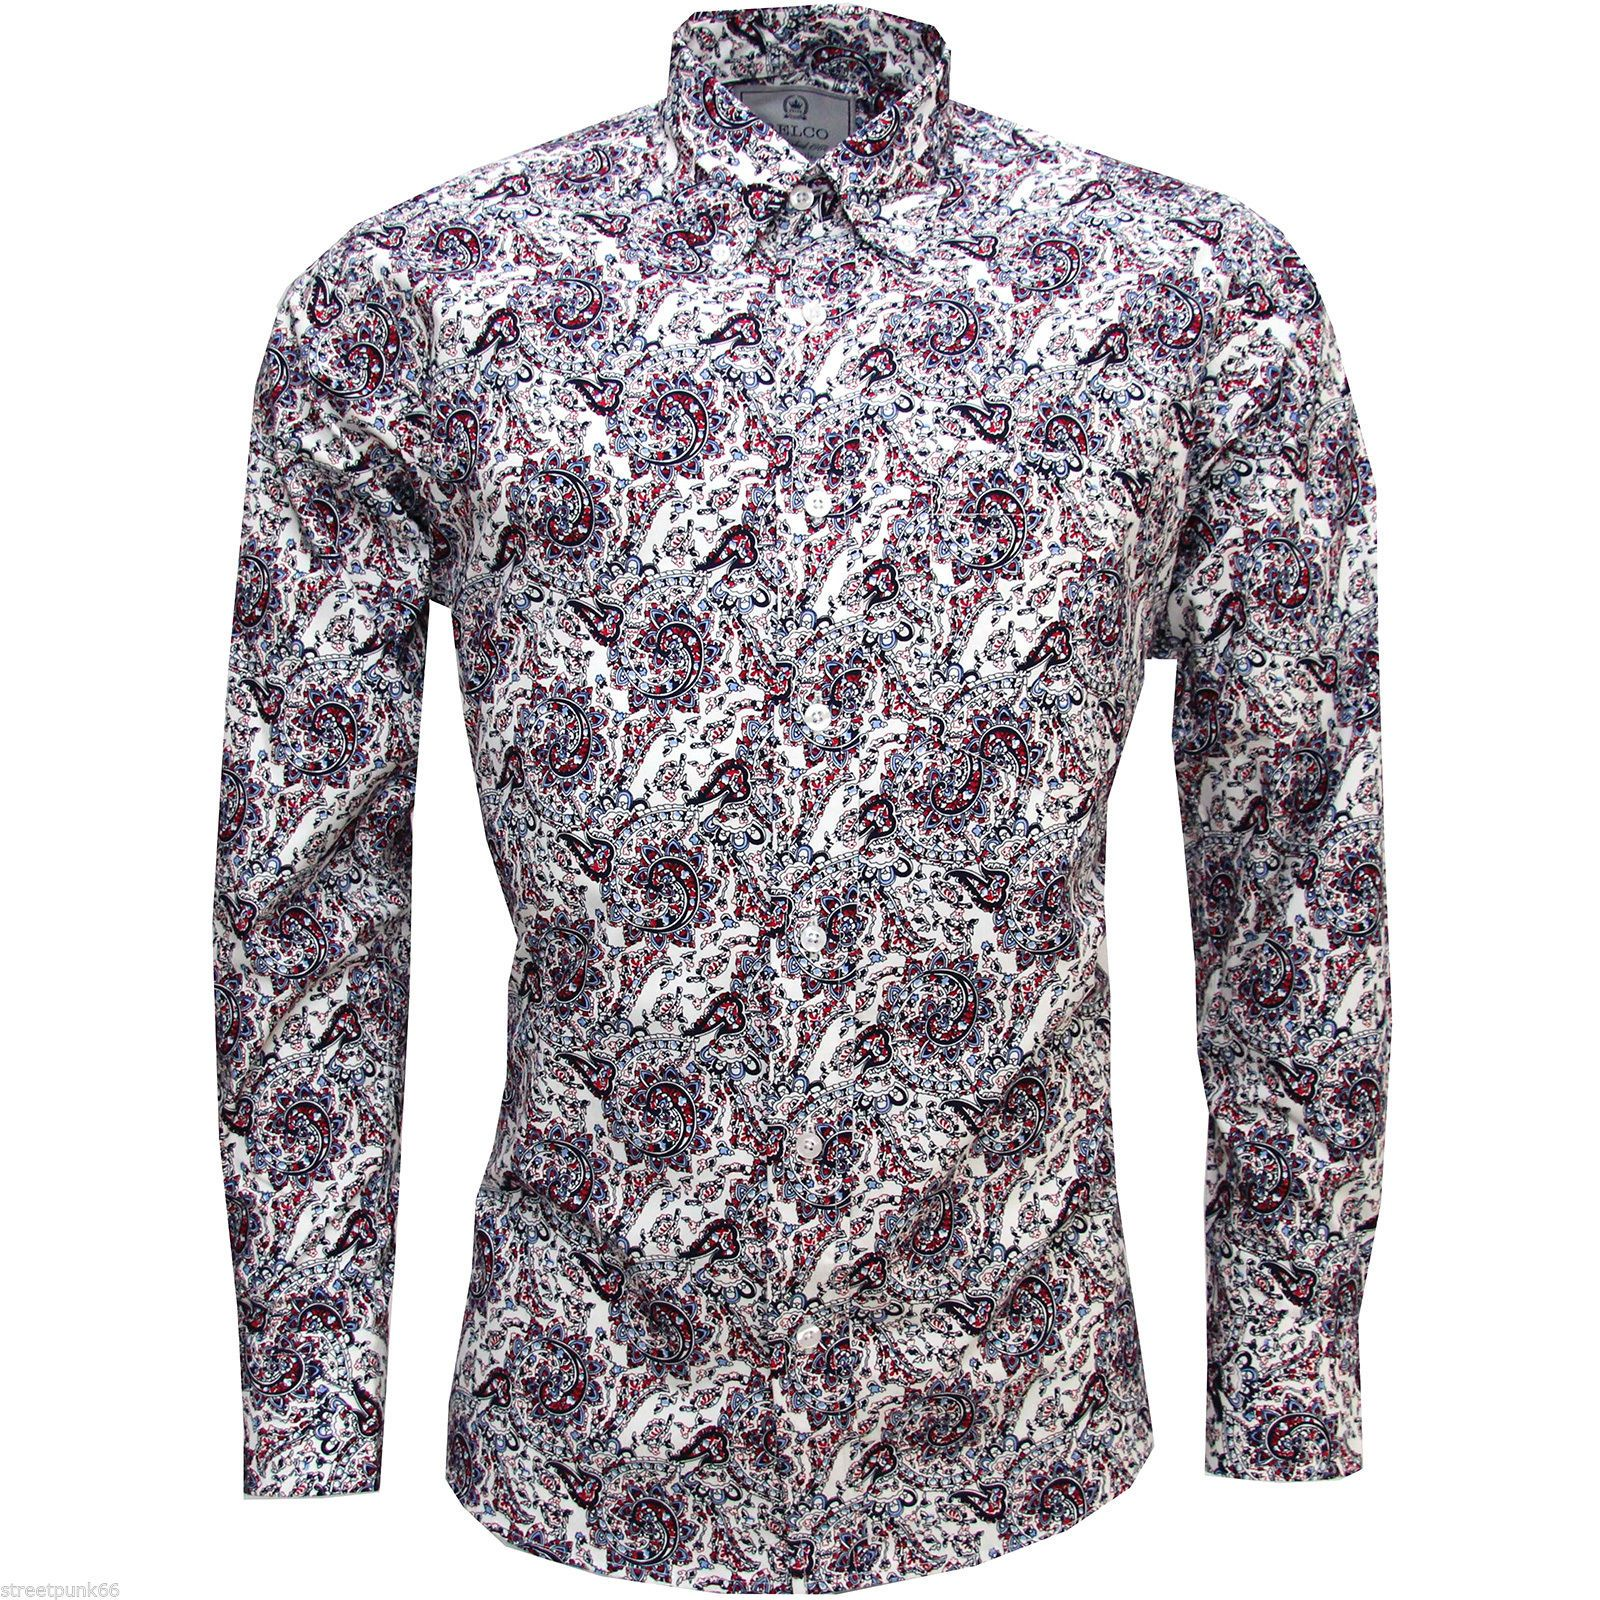 Relco Mens White Red Blue Paisley Long Sleeved Button Down